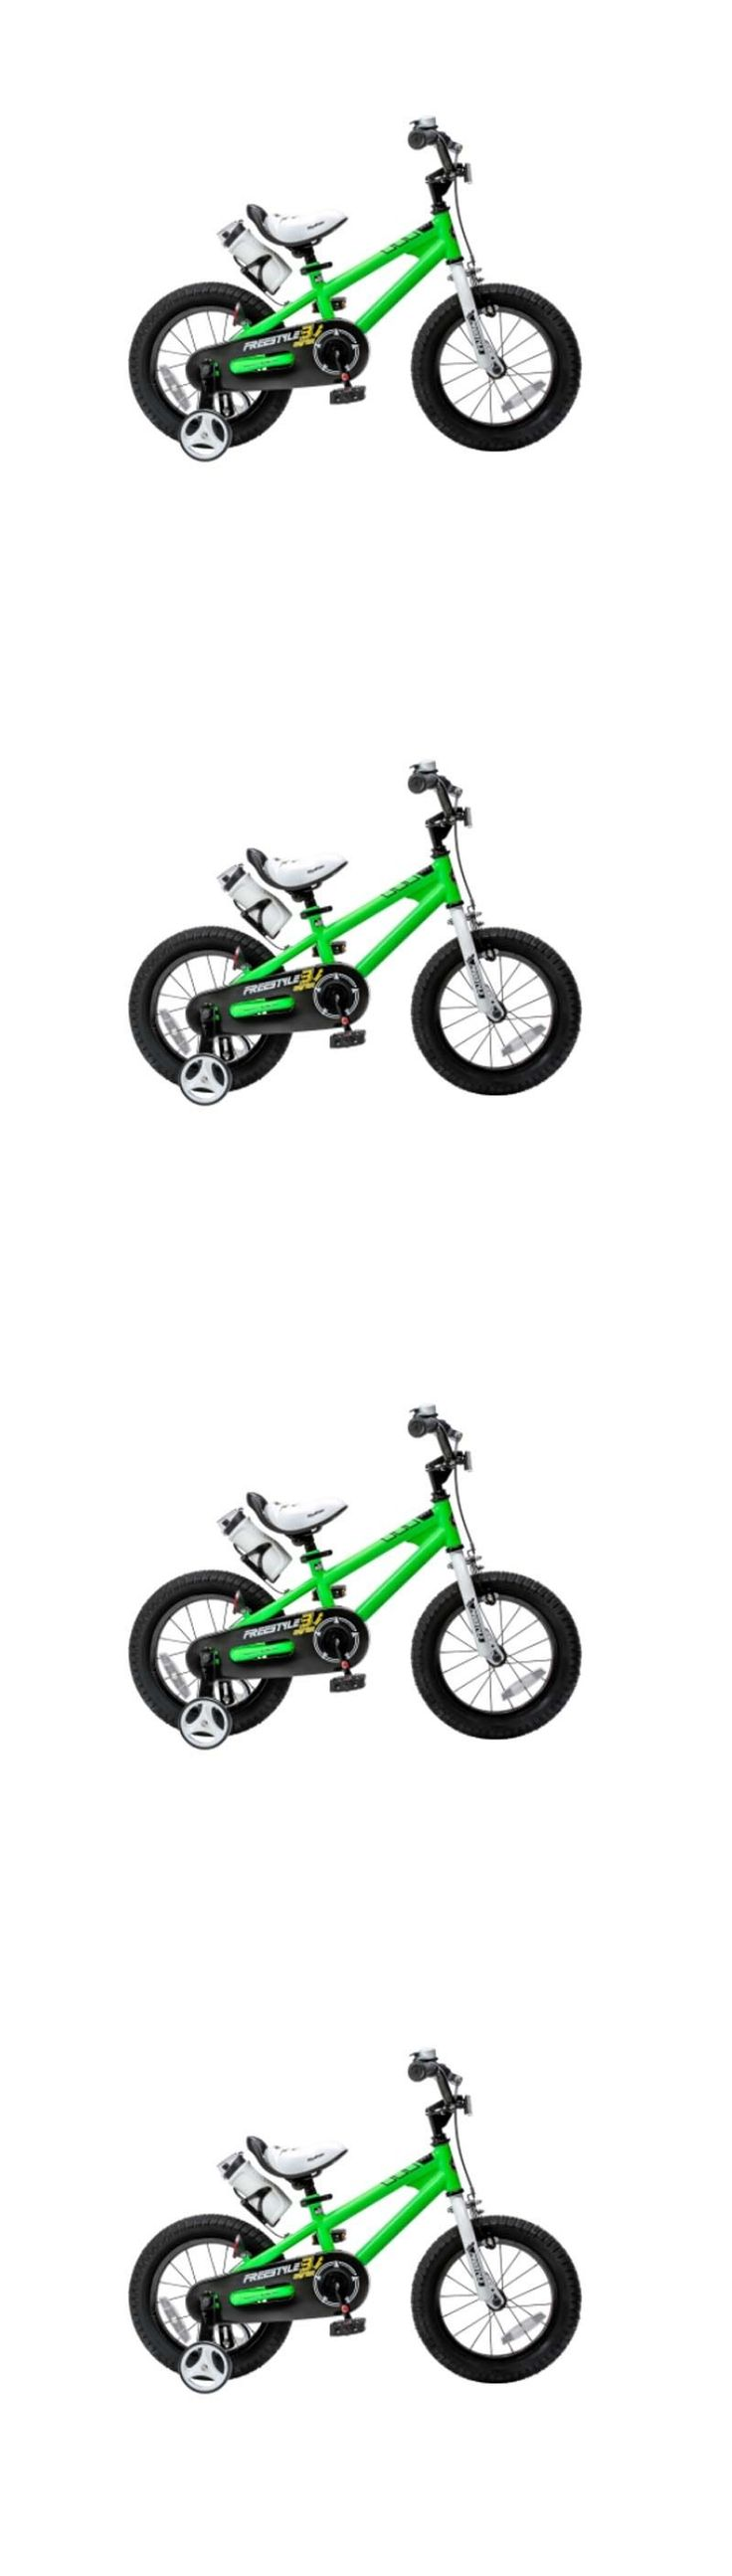 Training Wheels 177839: Bmx Bicycle For Kids Freestyle Bike With Training Wheels 14 Green Fun Rider -> BUY IT NOW ONLY: $135.4 on eBay!